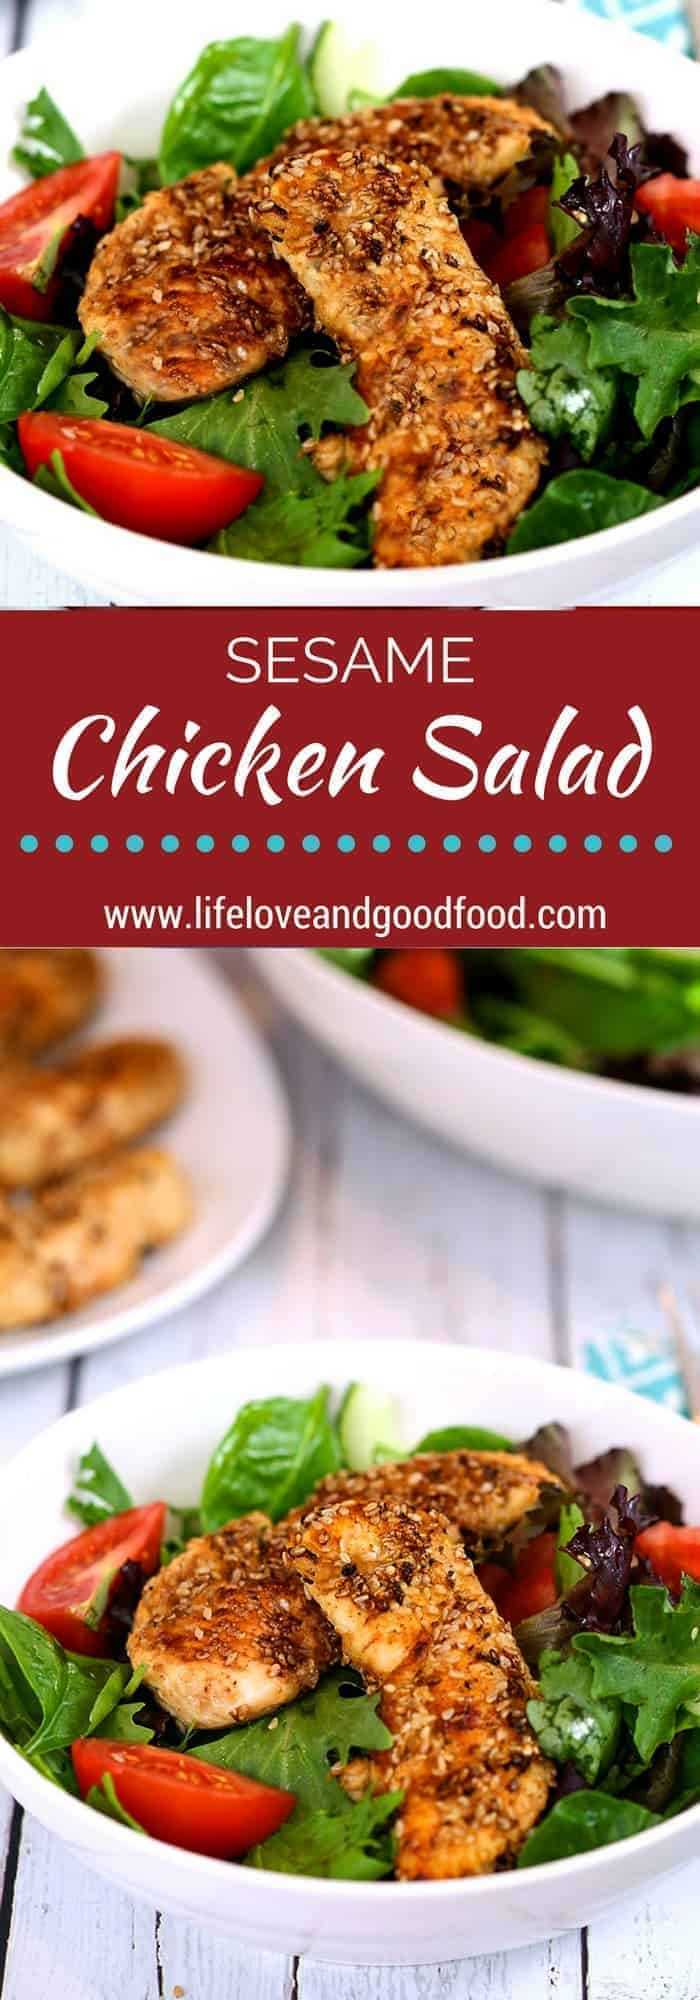 You'll love this recipe for Sesame Chicken Salad with a fresh ginger-infused vinaigrette. And, the fact that it's heart healthy is an added bonus!